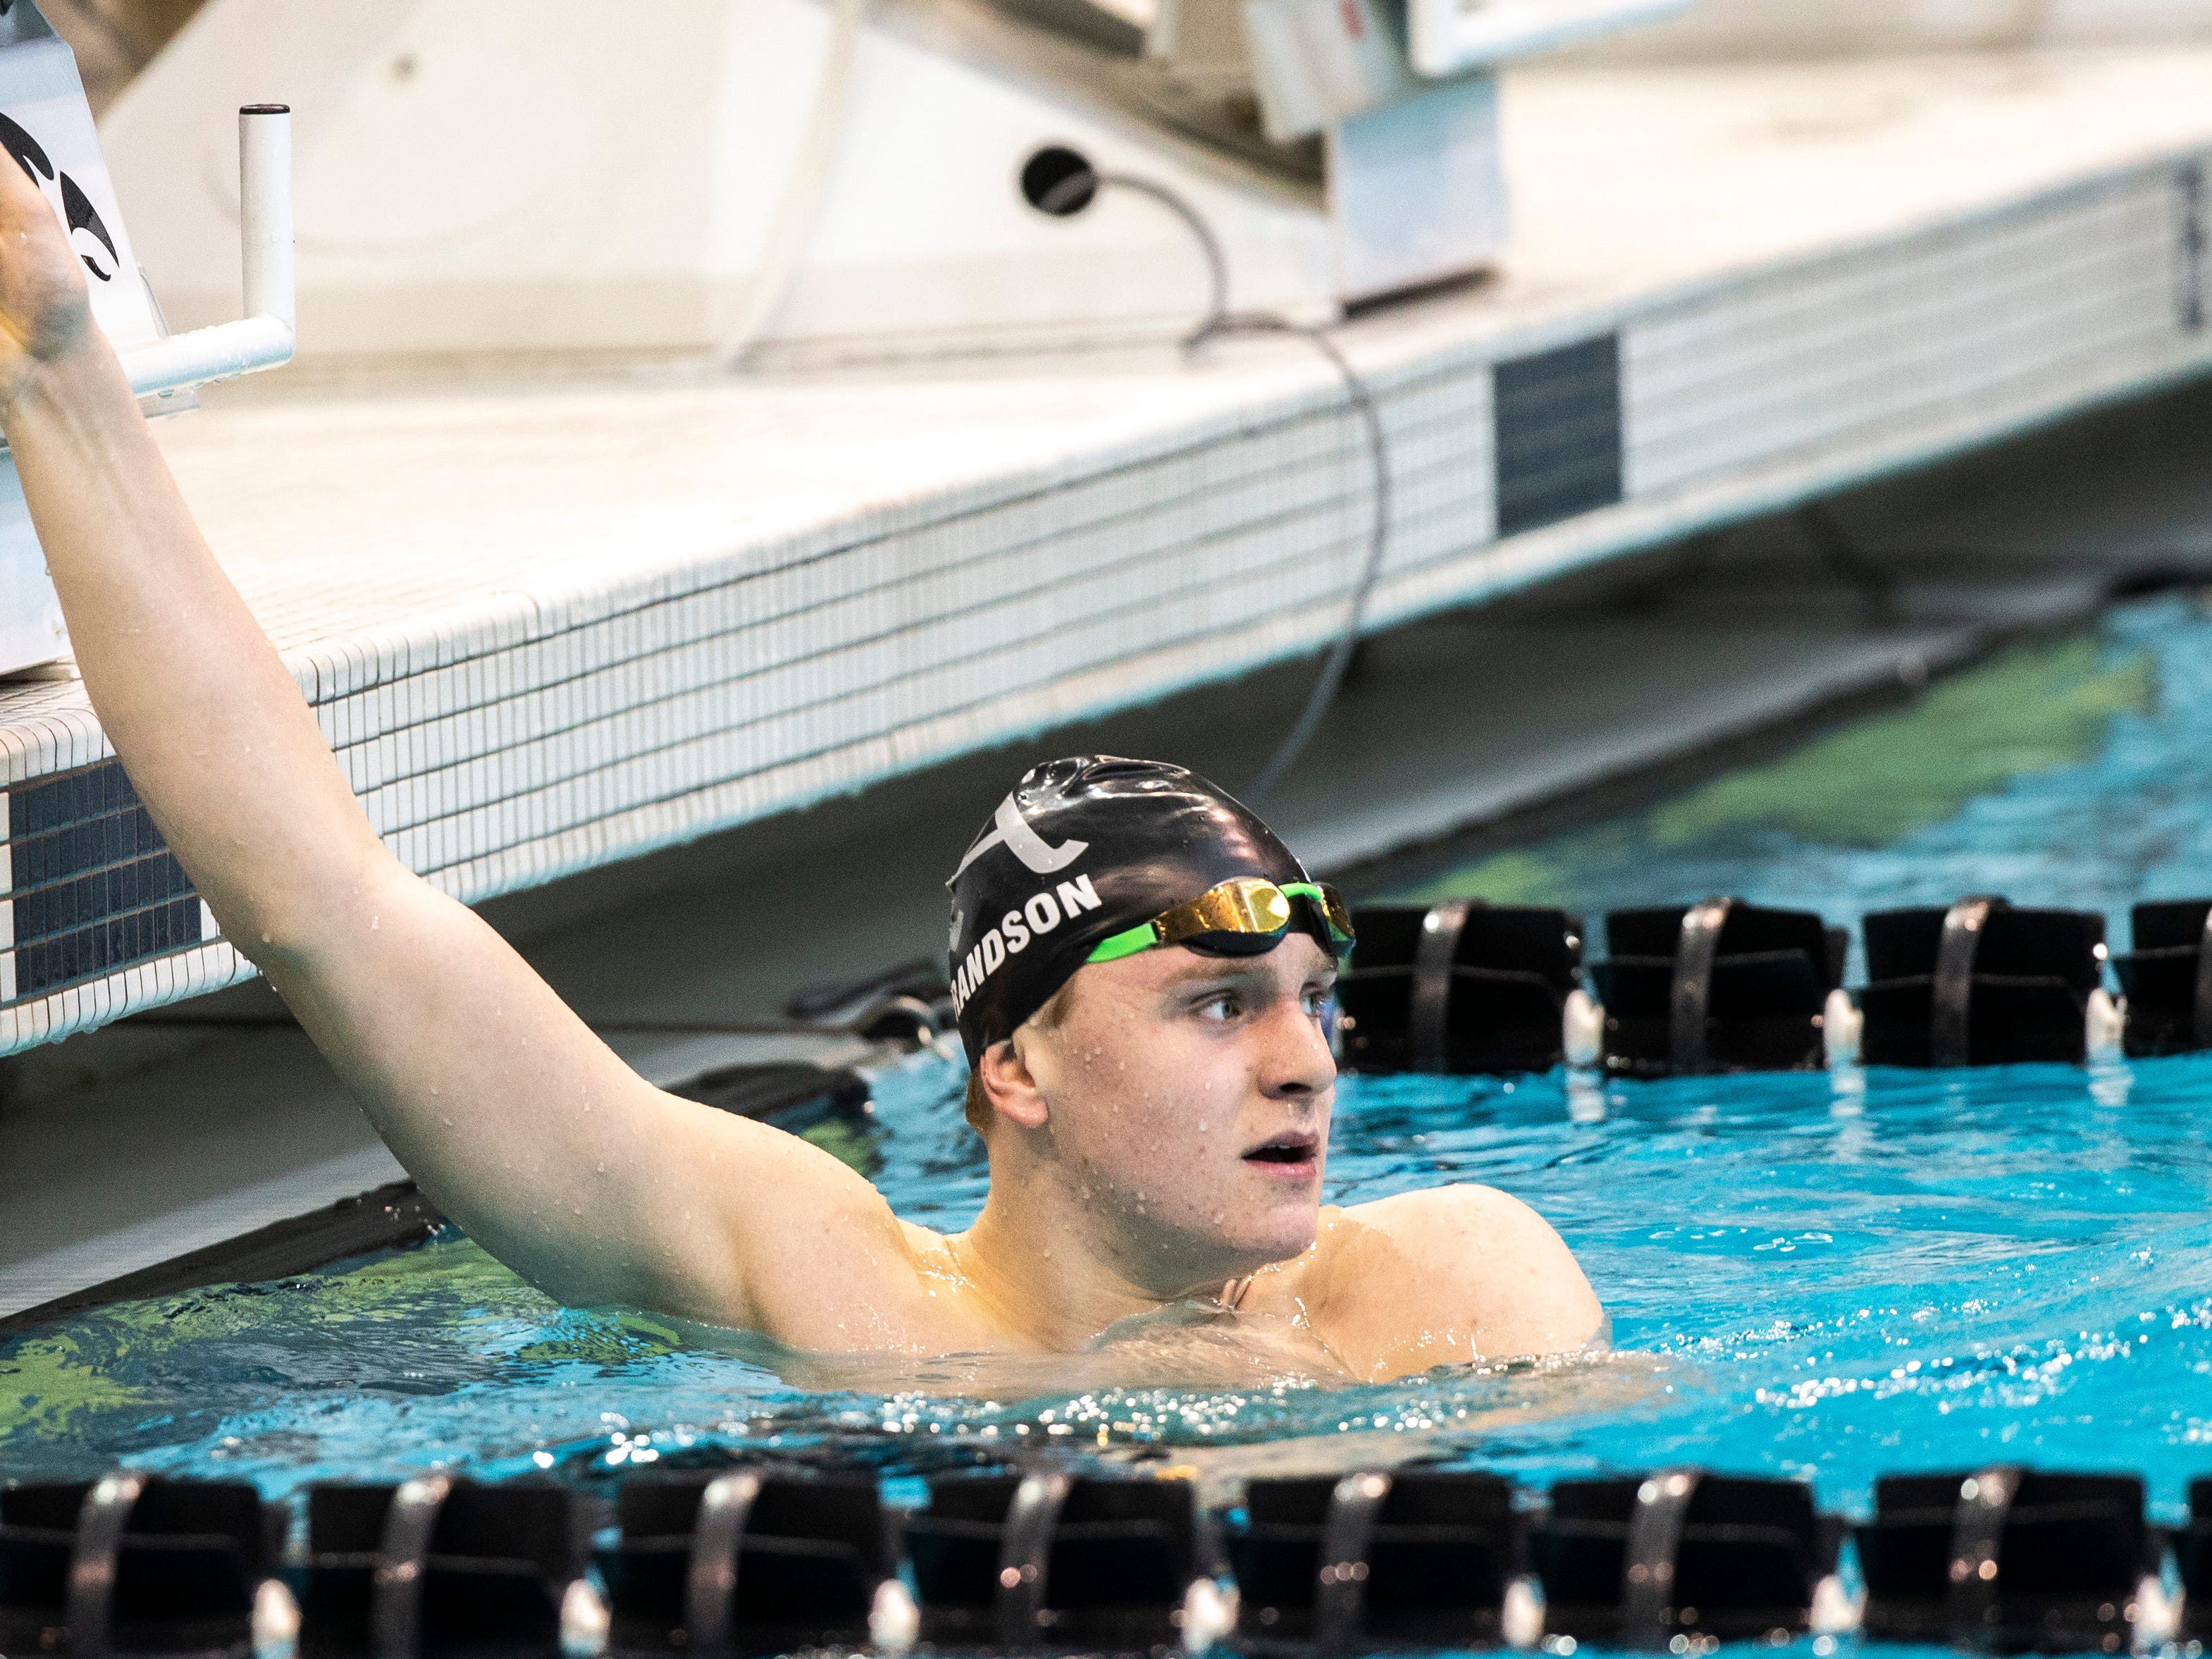 Ankeny sophomore Trent Frandson looks to the scoreboard after winning the third heat of the 500 yard freestyle during the Iowa boys' state swimming regional championship meet on Saturday, Feb. 9, 2019 at Campus Recreation and Wellness Center on the University of Iowa campus in Iowa City, Iowa. Frandson set a state record with his first place finish, with a time of 4:23.46.